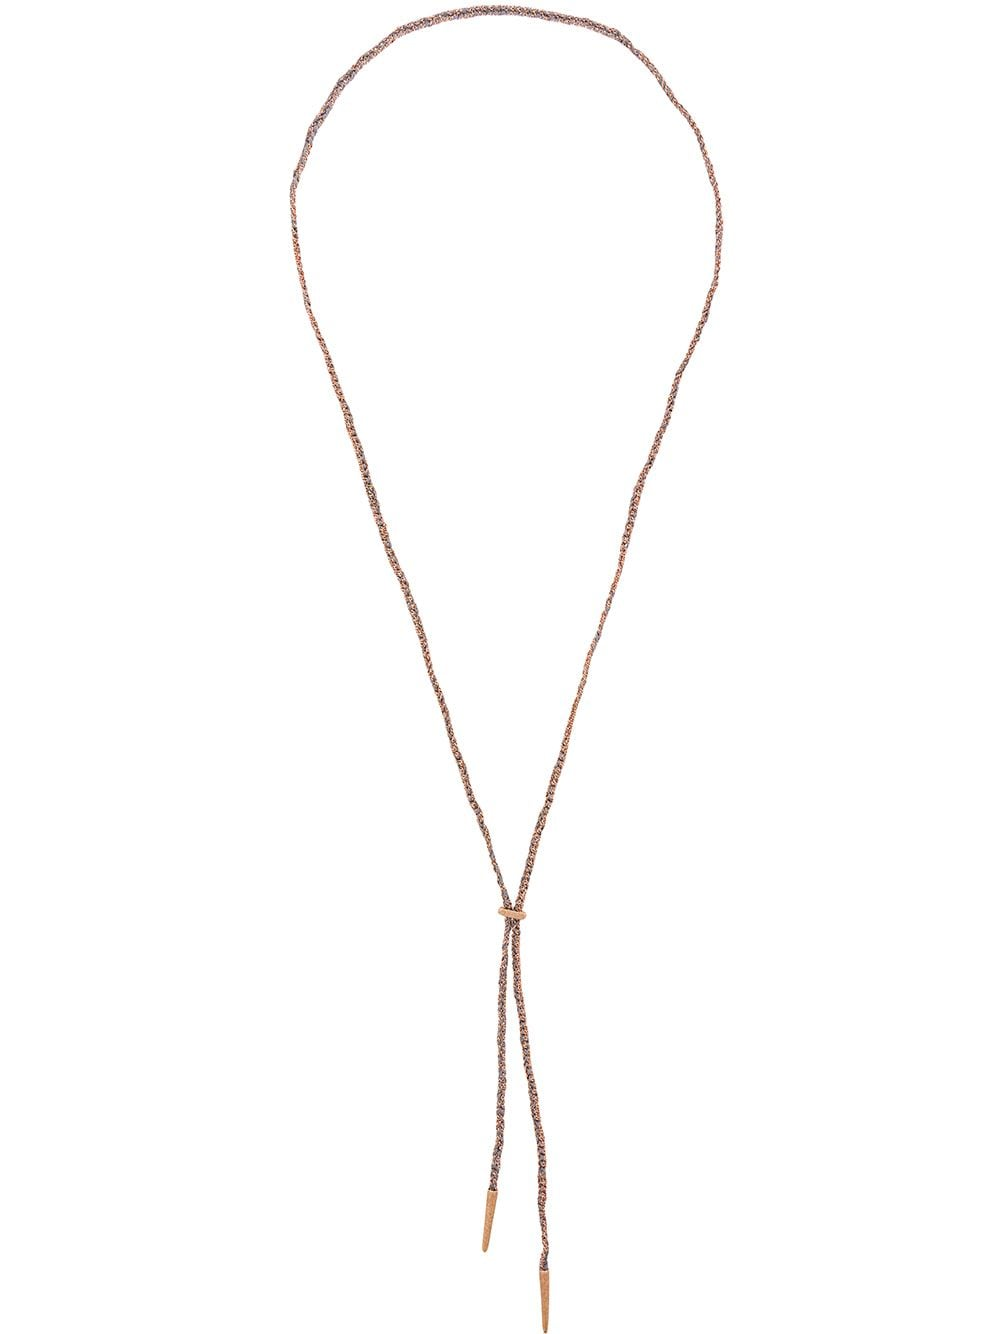 Carolina Bucci Sparkly Lucky Lariat Necklace is part of Lariat necklace, Lariat, Necklace, Fine jewelry, 18kt gold, Gold silk -  Permanent CollectionCarolina BucciSparkly Lucky lariat necklace18kt rose gold Sparkly Lucky lariat necklace from Carolina Bucci featuring a long length  Part of her Lucky Collection inspired by the friendship bracelets of her childhood, Carolina Bucci's Lucky lariat features her signature Florentine finish rose gold  Necklace measures approximately 95cm with a 18kt gold clip which allows the wearer to adjust the length Made in Italy  Composition18kt Rose Gold 100%, Silk 100%Designer Style ID CB90768